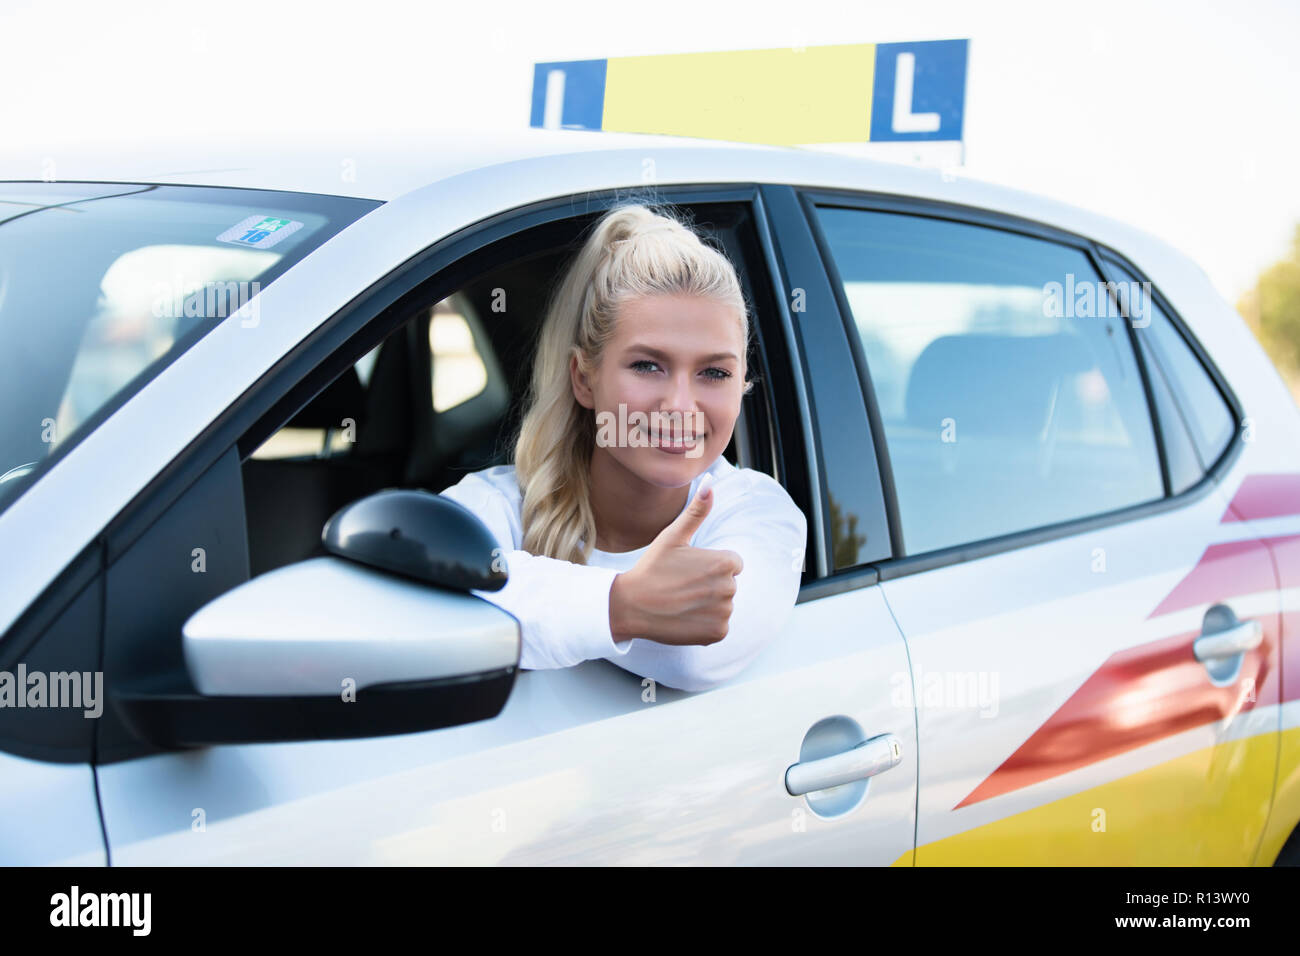 Driving school. Female young car driver going thumbs up after passing the driving license test. Successful woman smiling in vehicle. Free space for te Stock Photo